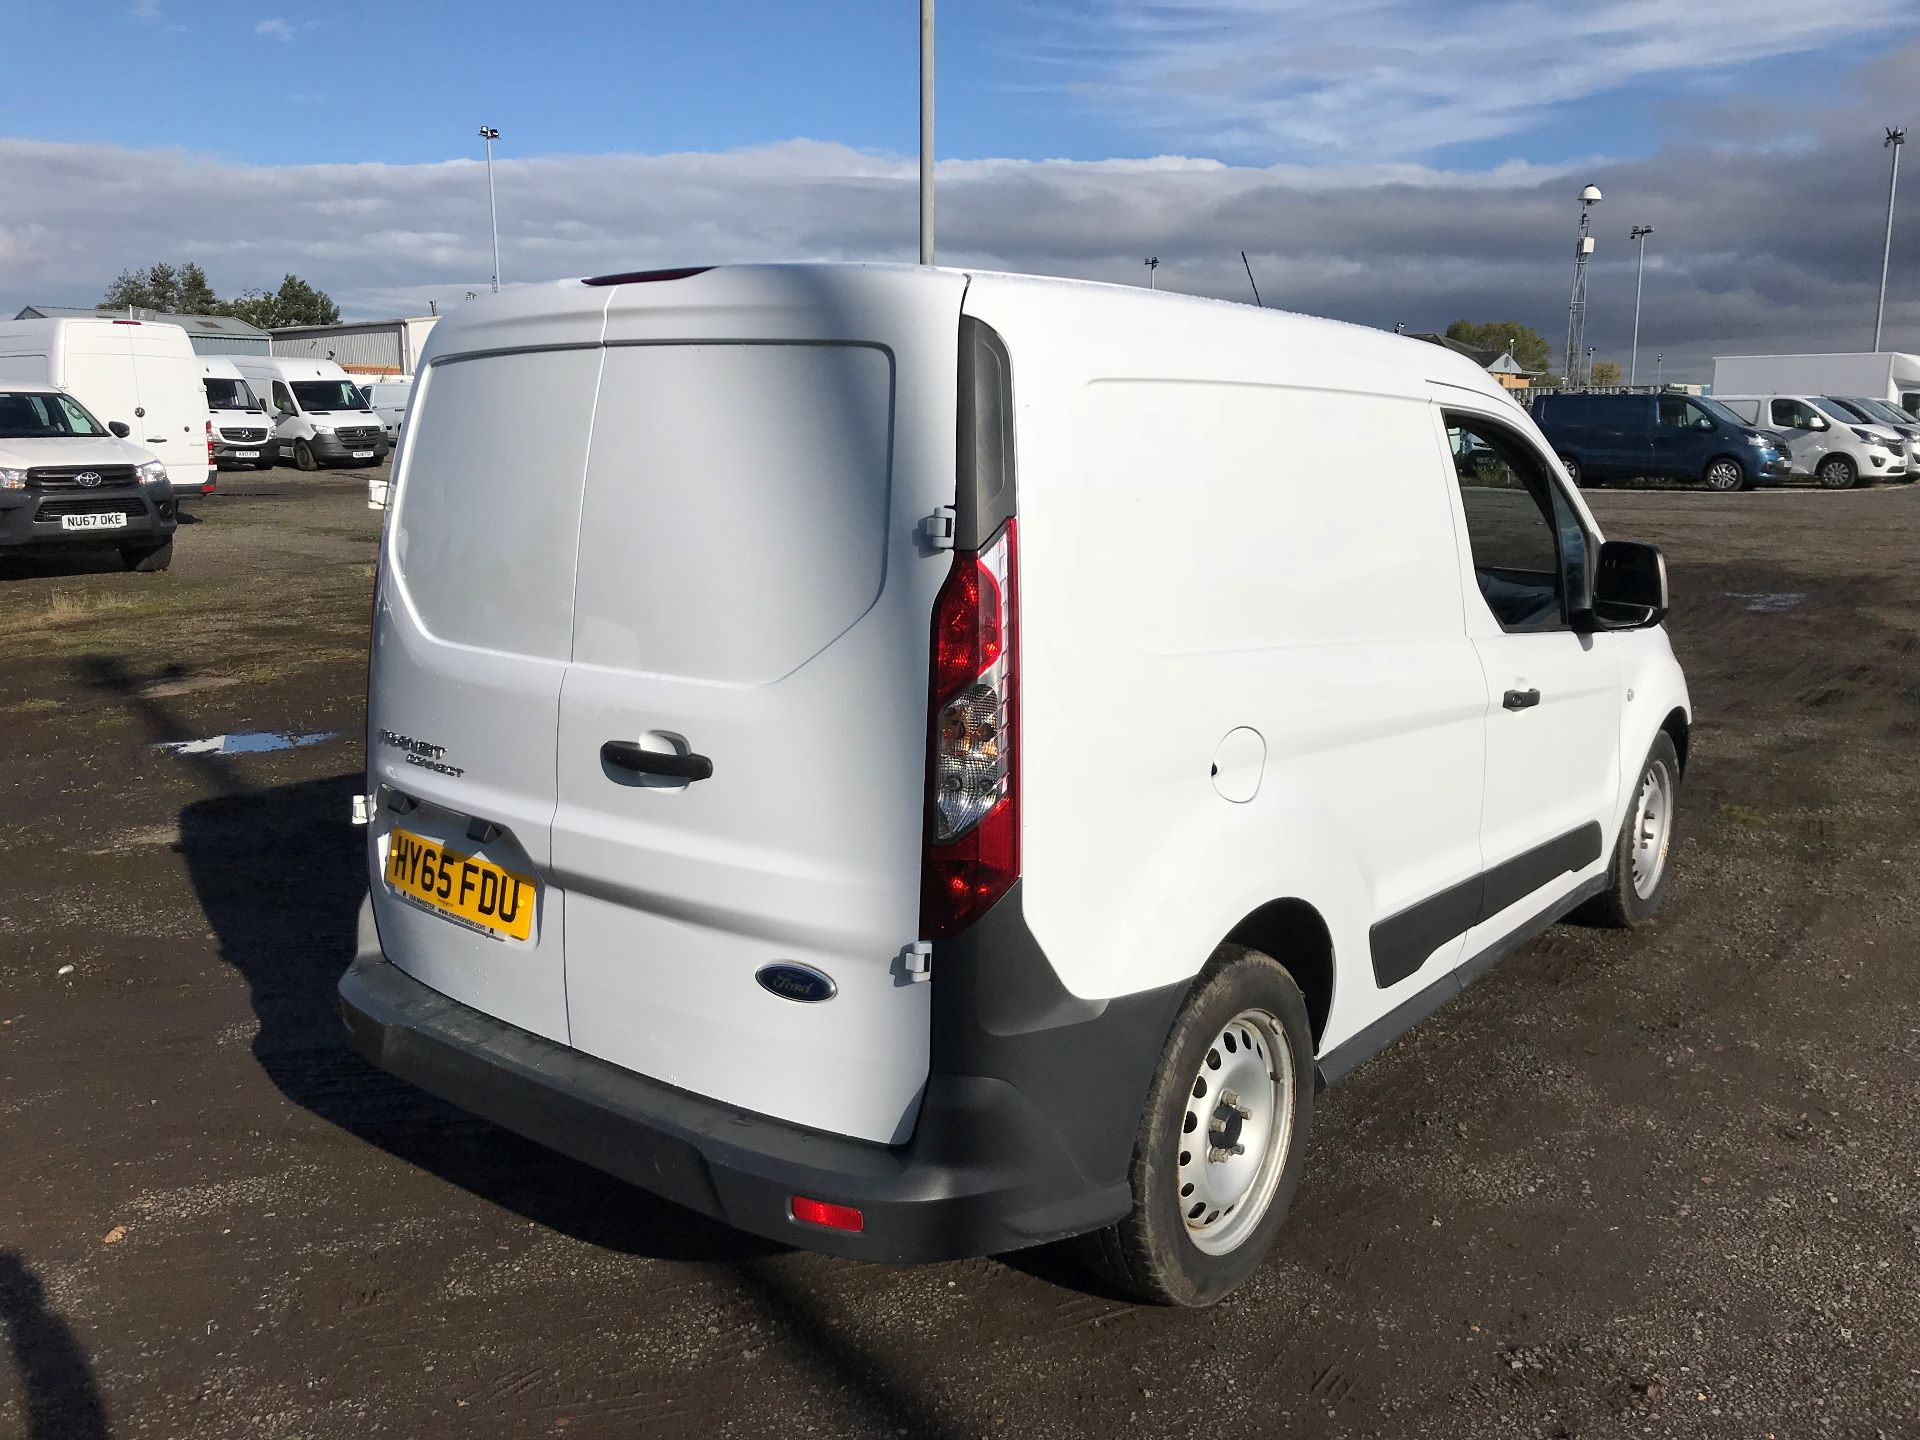 2015 Ford Transit Connect 1.6 Tdci 75Ps Van (HY65FDU) Image 7